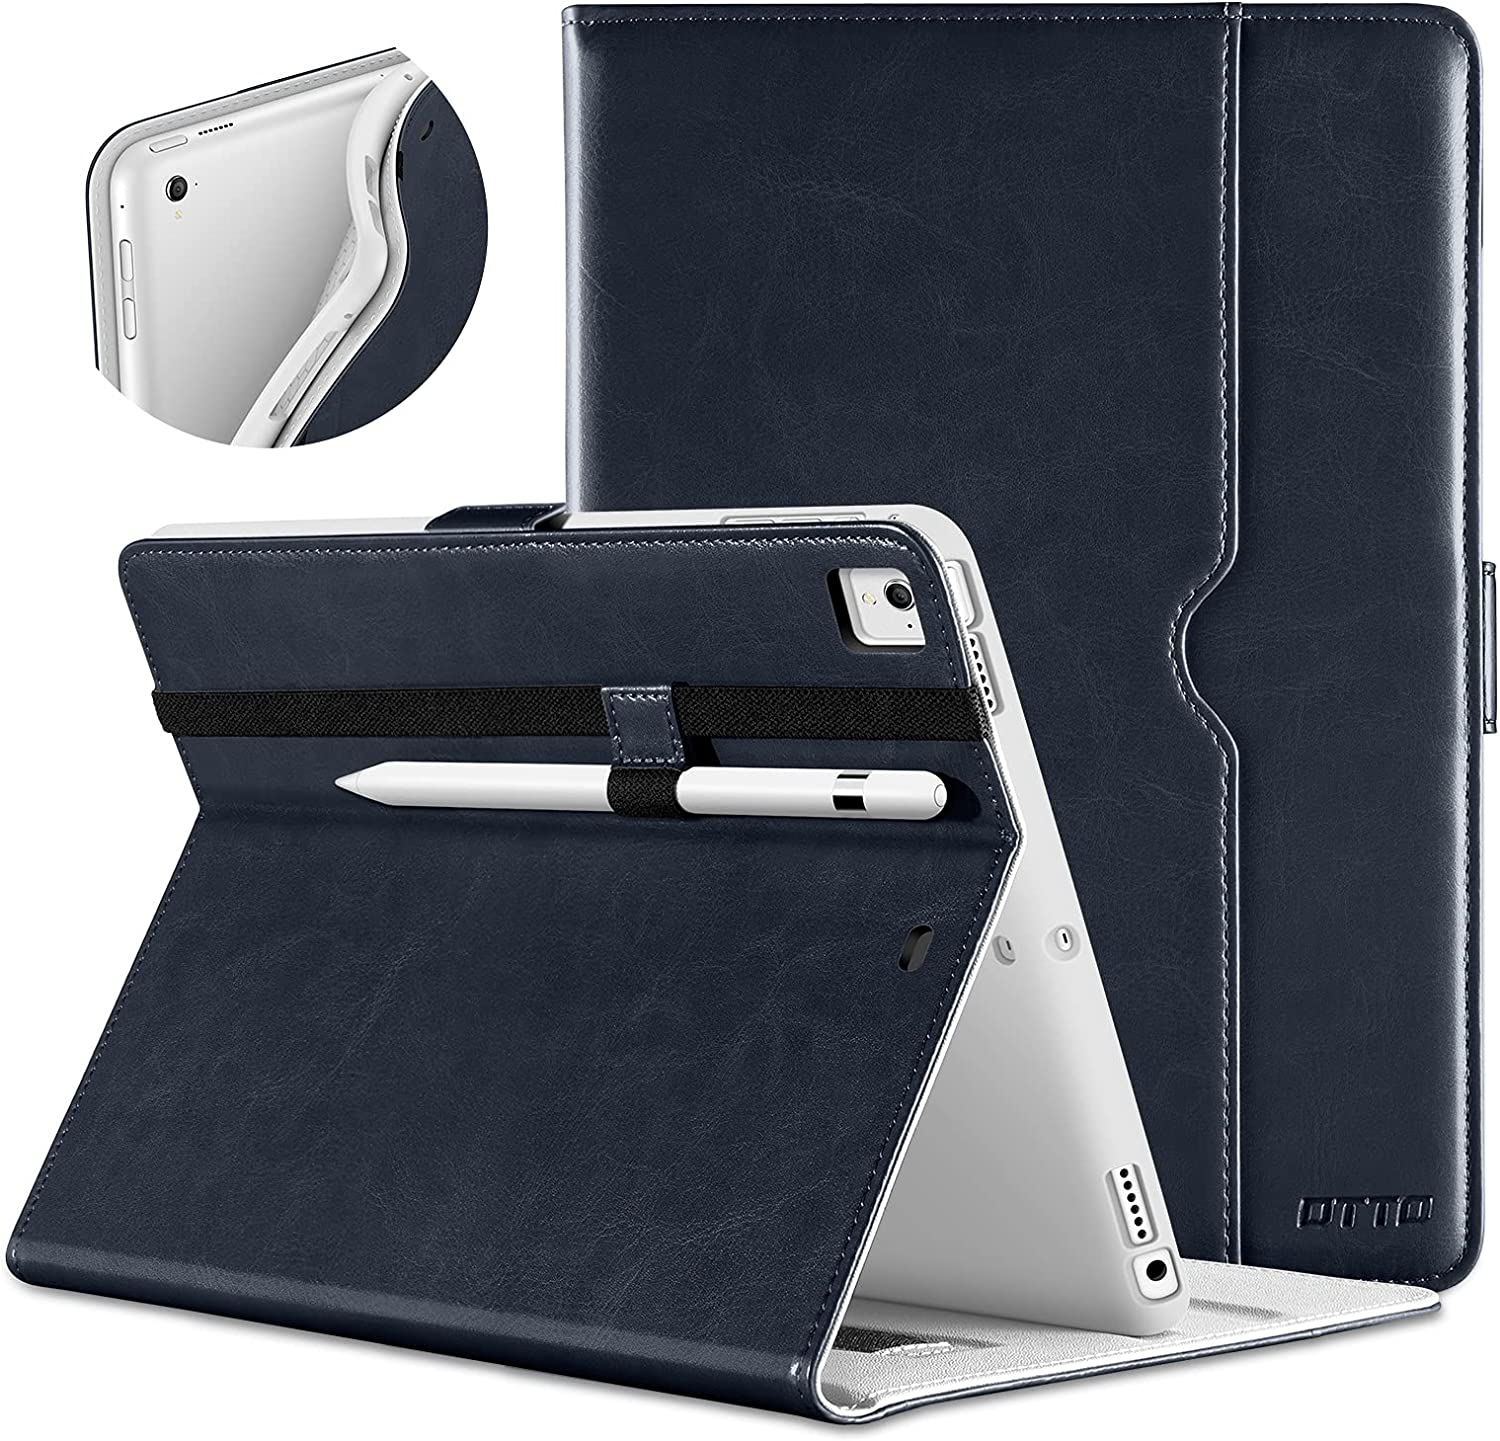 DTTO New iPad 9.7 Inch 5th/6th Generation 2018/2017 Case with Apple Pencil Holder, Premium Leather Folio Stand Cover Case for Apple iPad 9.7 inch, Also Fit iPad Pro 9.7/Air 2/Air - Blue(White Lining)